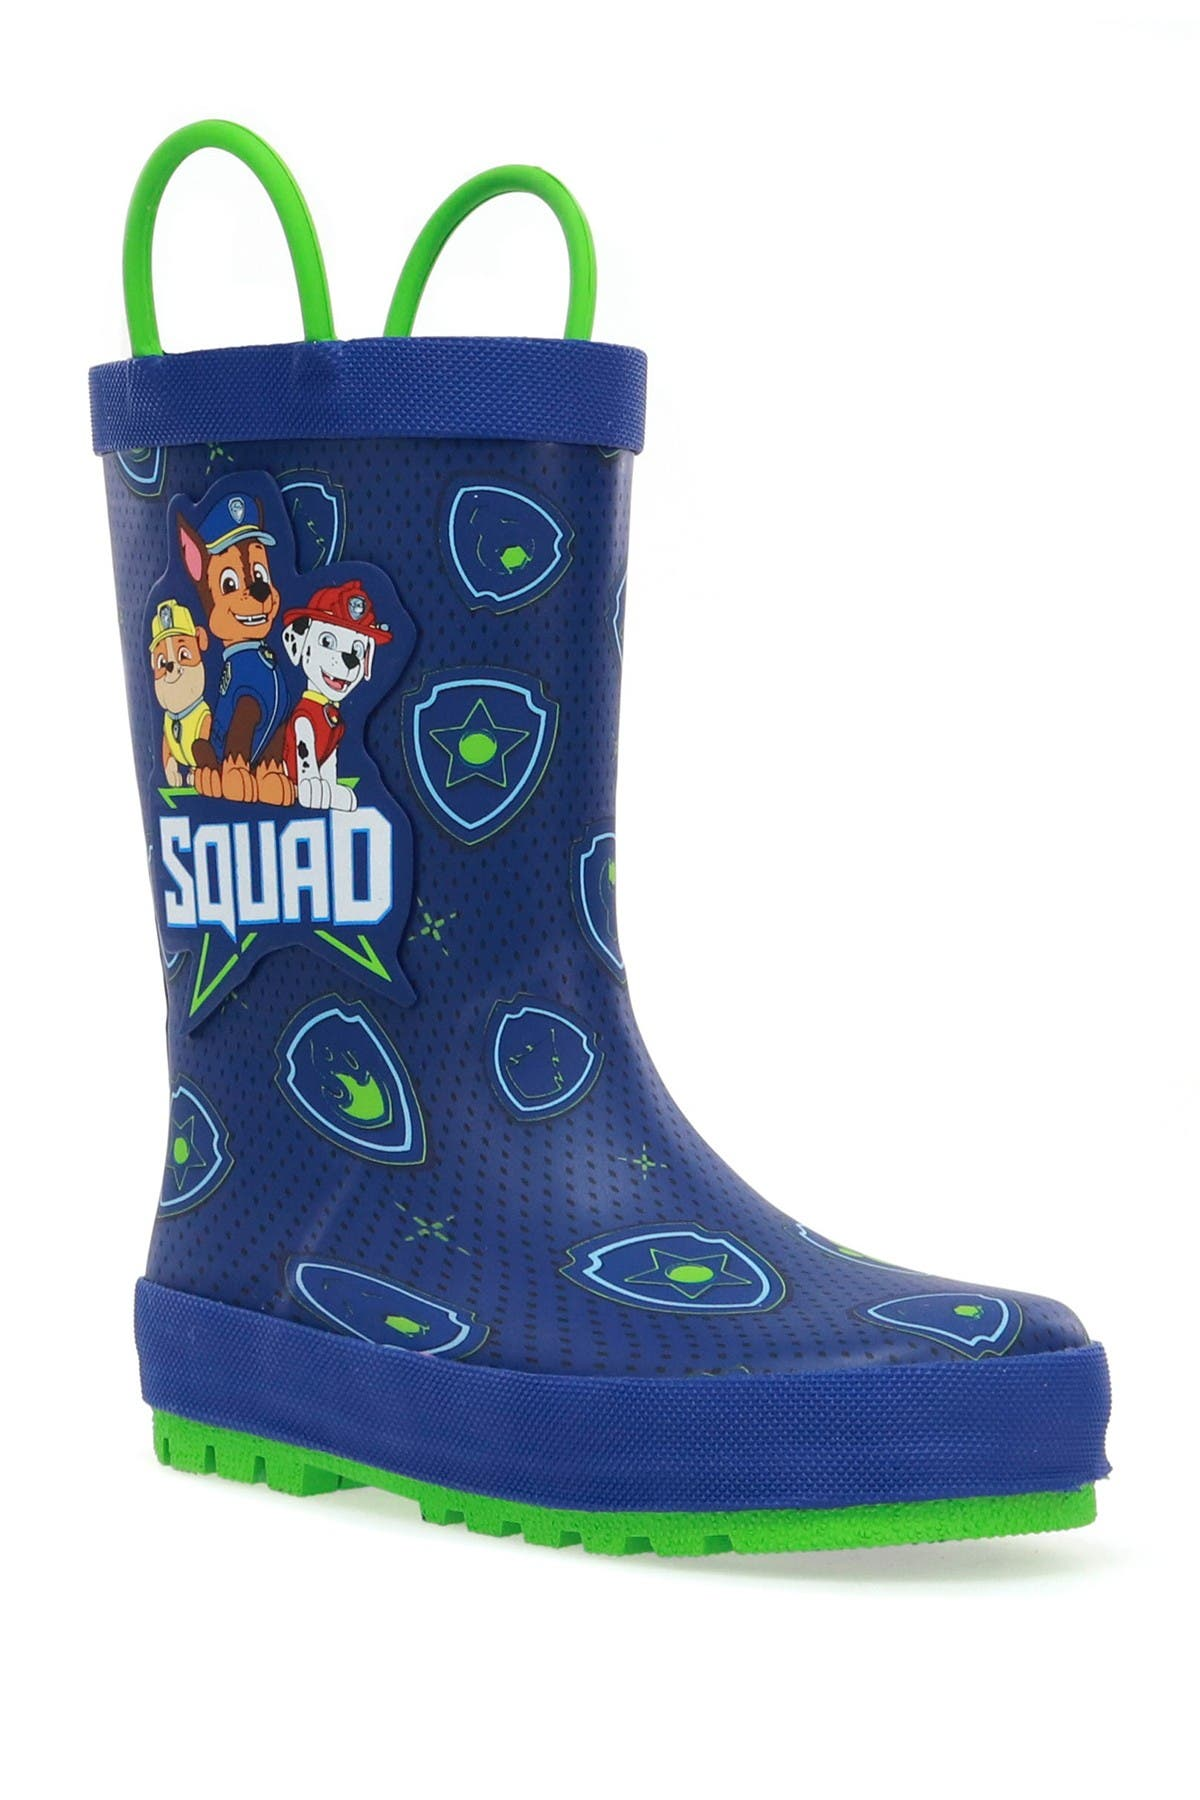 Image of Western Chief Paw Patrol Squad Rain Boot